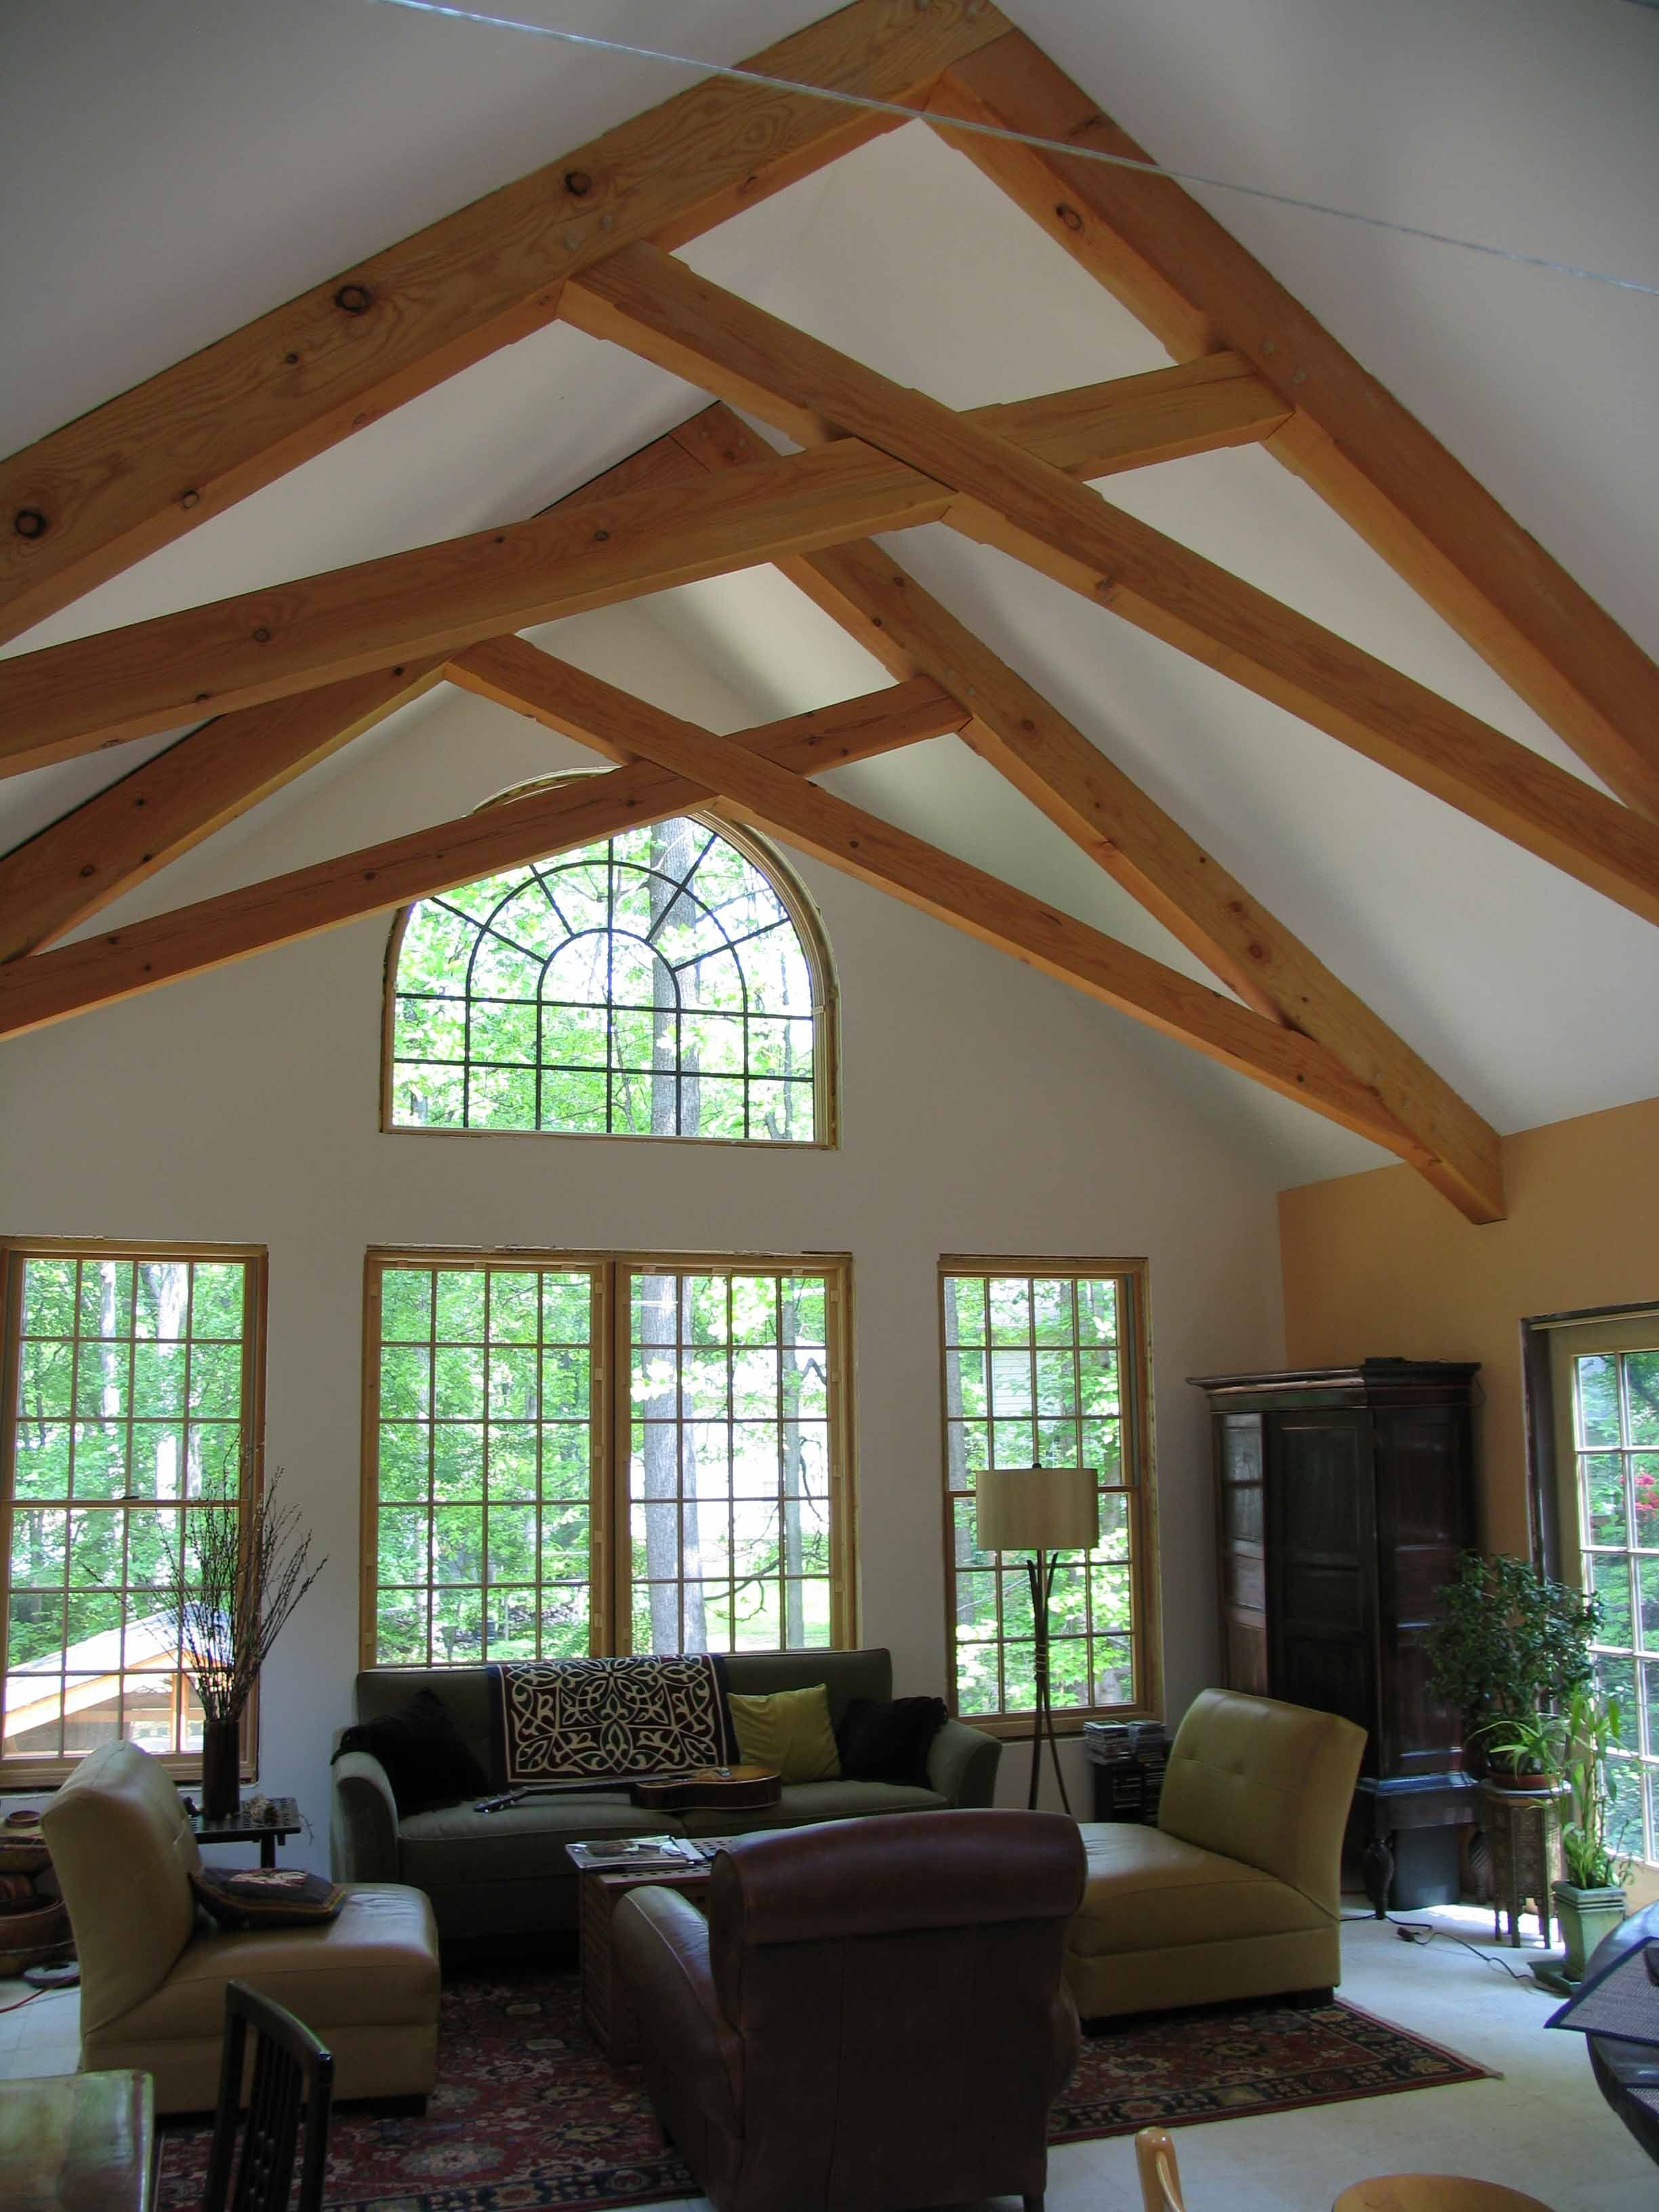 Private residence scissor trusses scissor trusses for Where to buy trusses